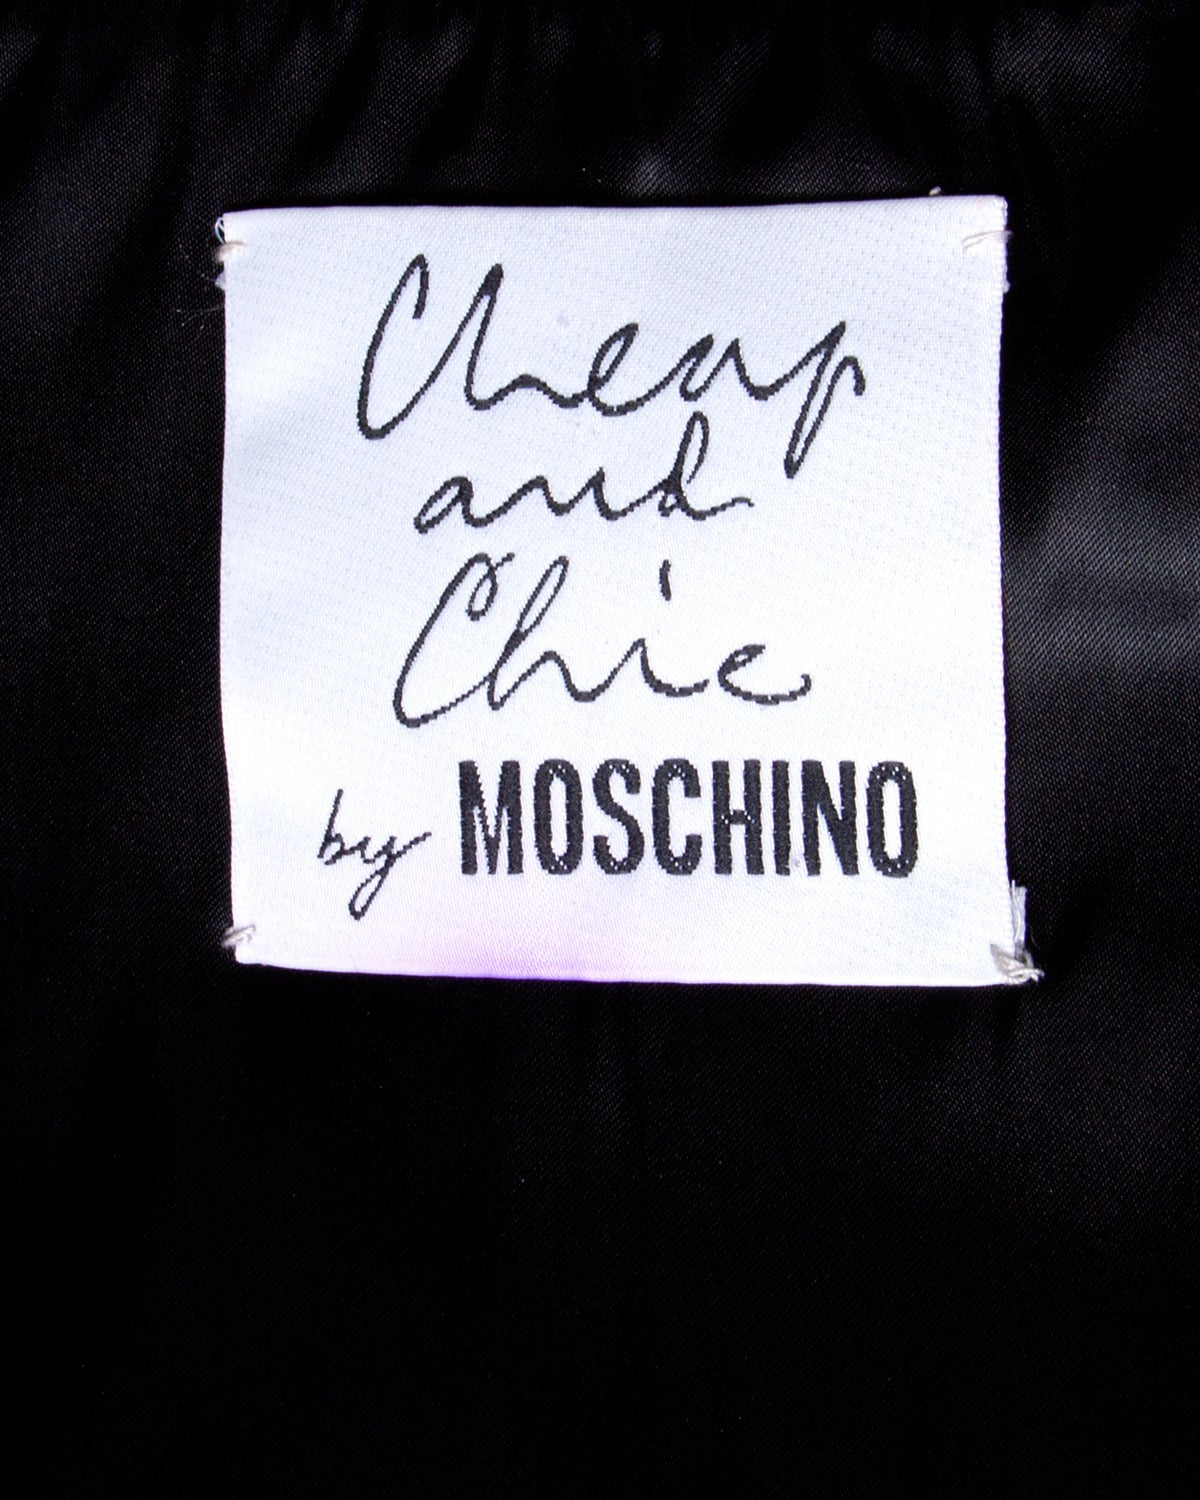 Moschino Vintage 1990s 90s Black Leather Skirt with Heart Belt Buckle For Sale 3